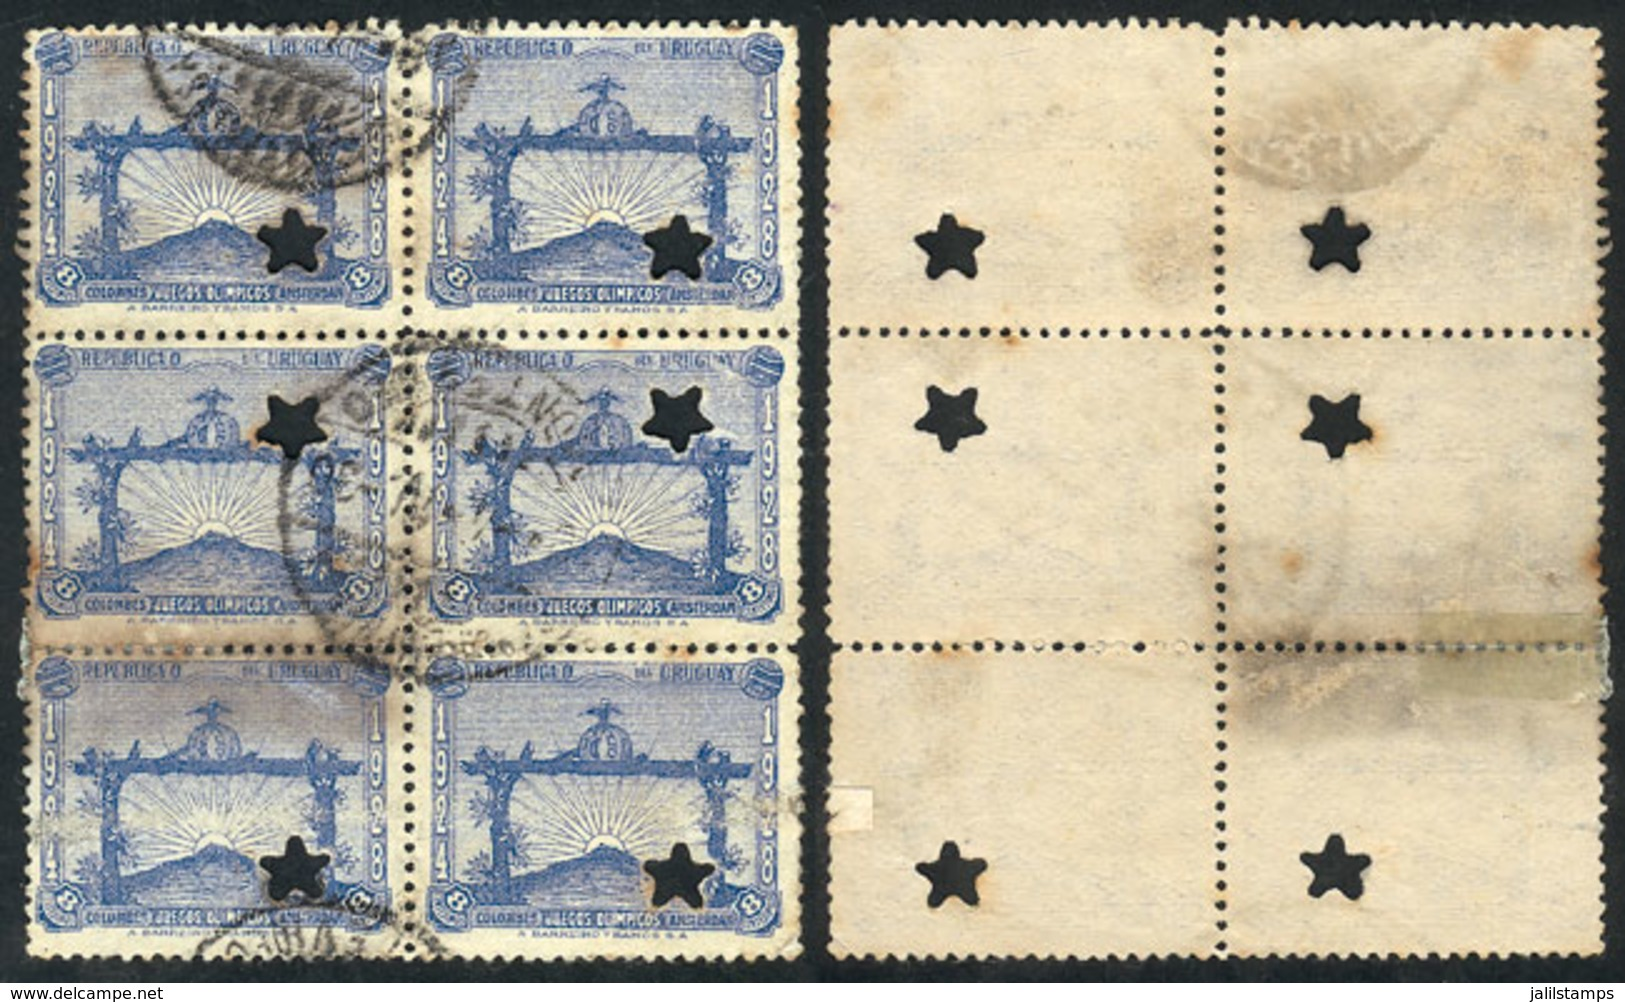 TOPIC FOOTBALL/SOCCER: Sc.390, 1928 8c. Olympic Football Winners, Block Of 6 With Punch Hole For Official Use (star), Wi - Football